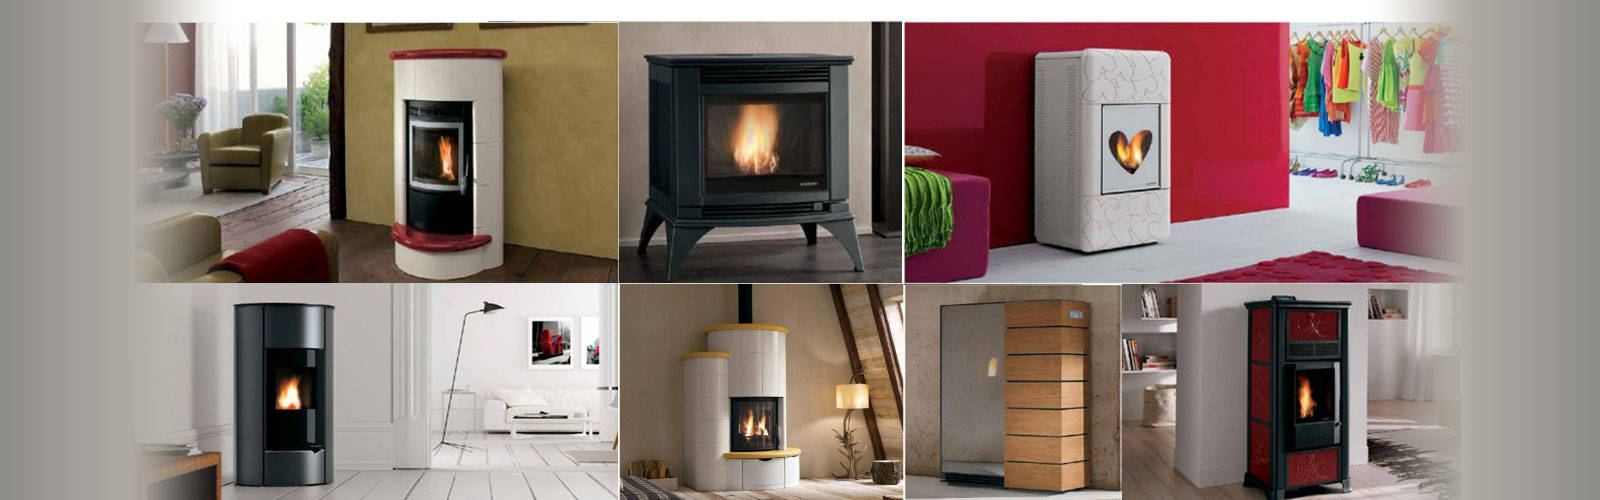 wood pellet stove a heating solution with easyvolt